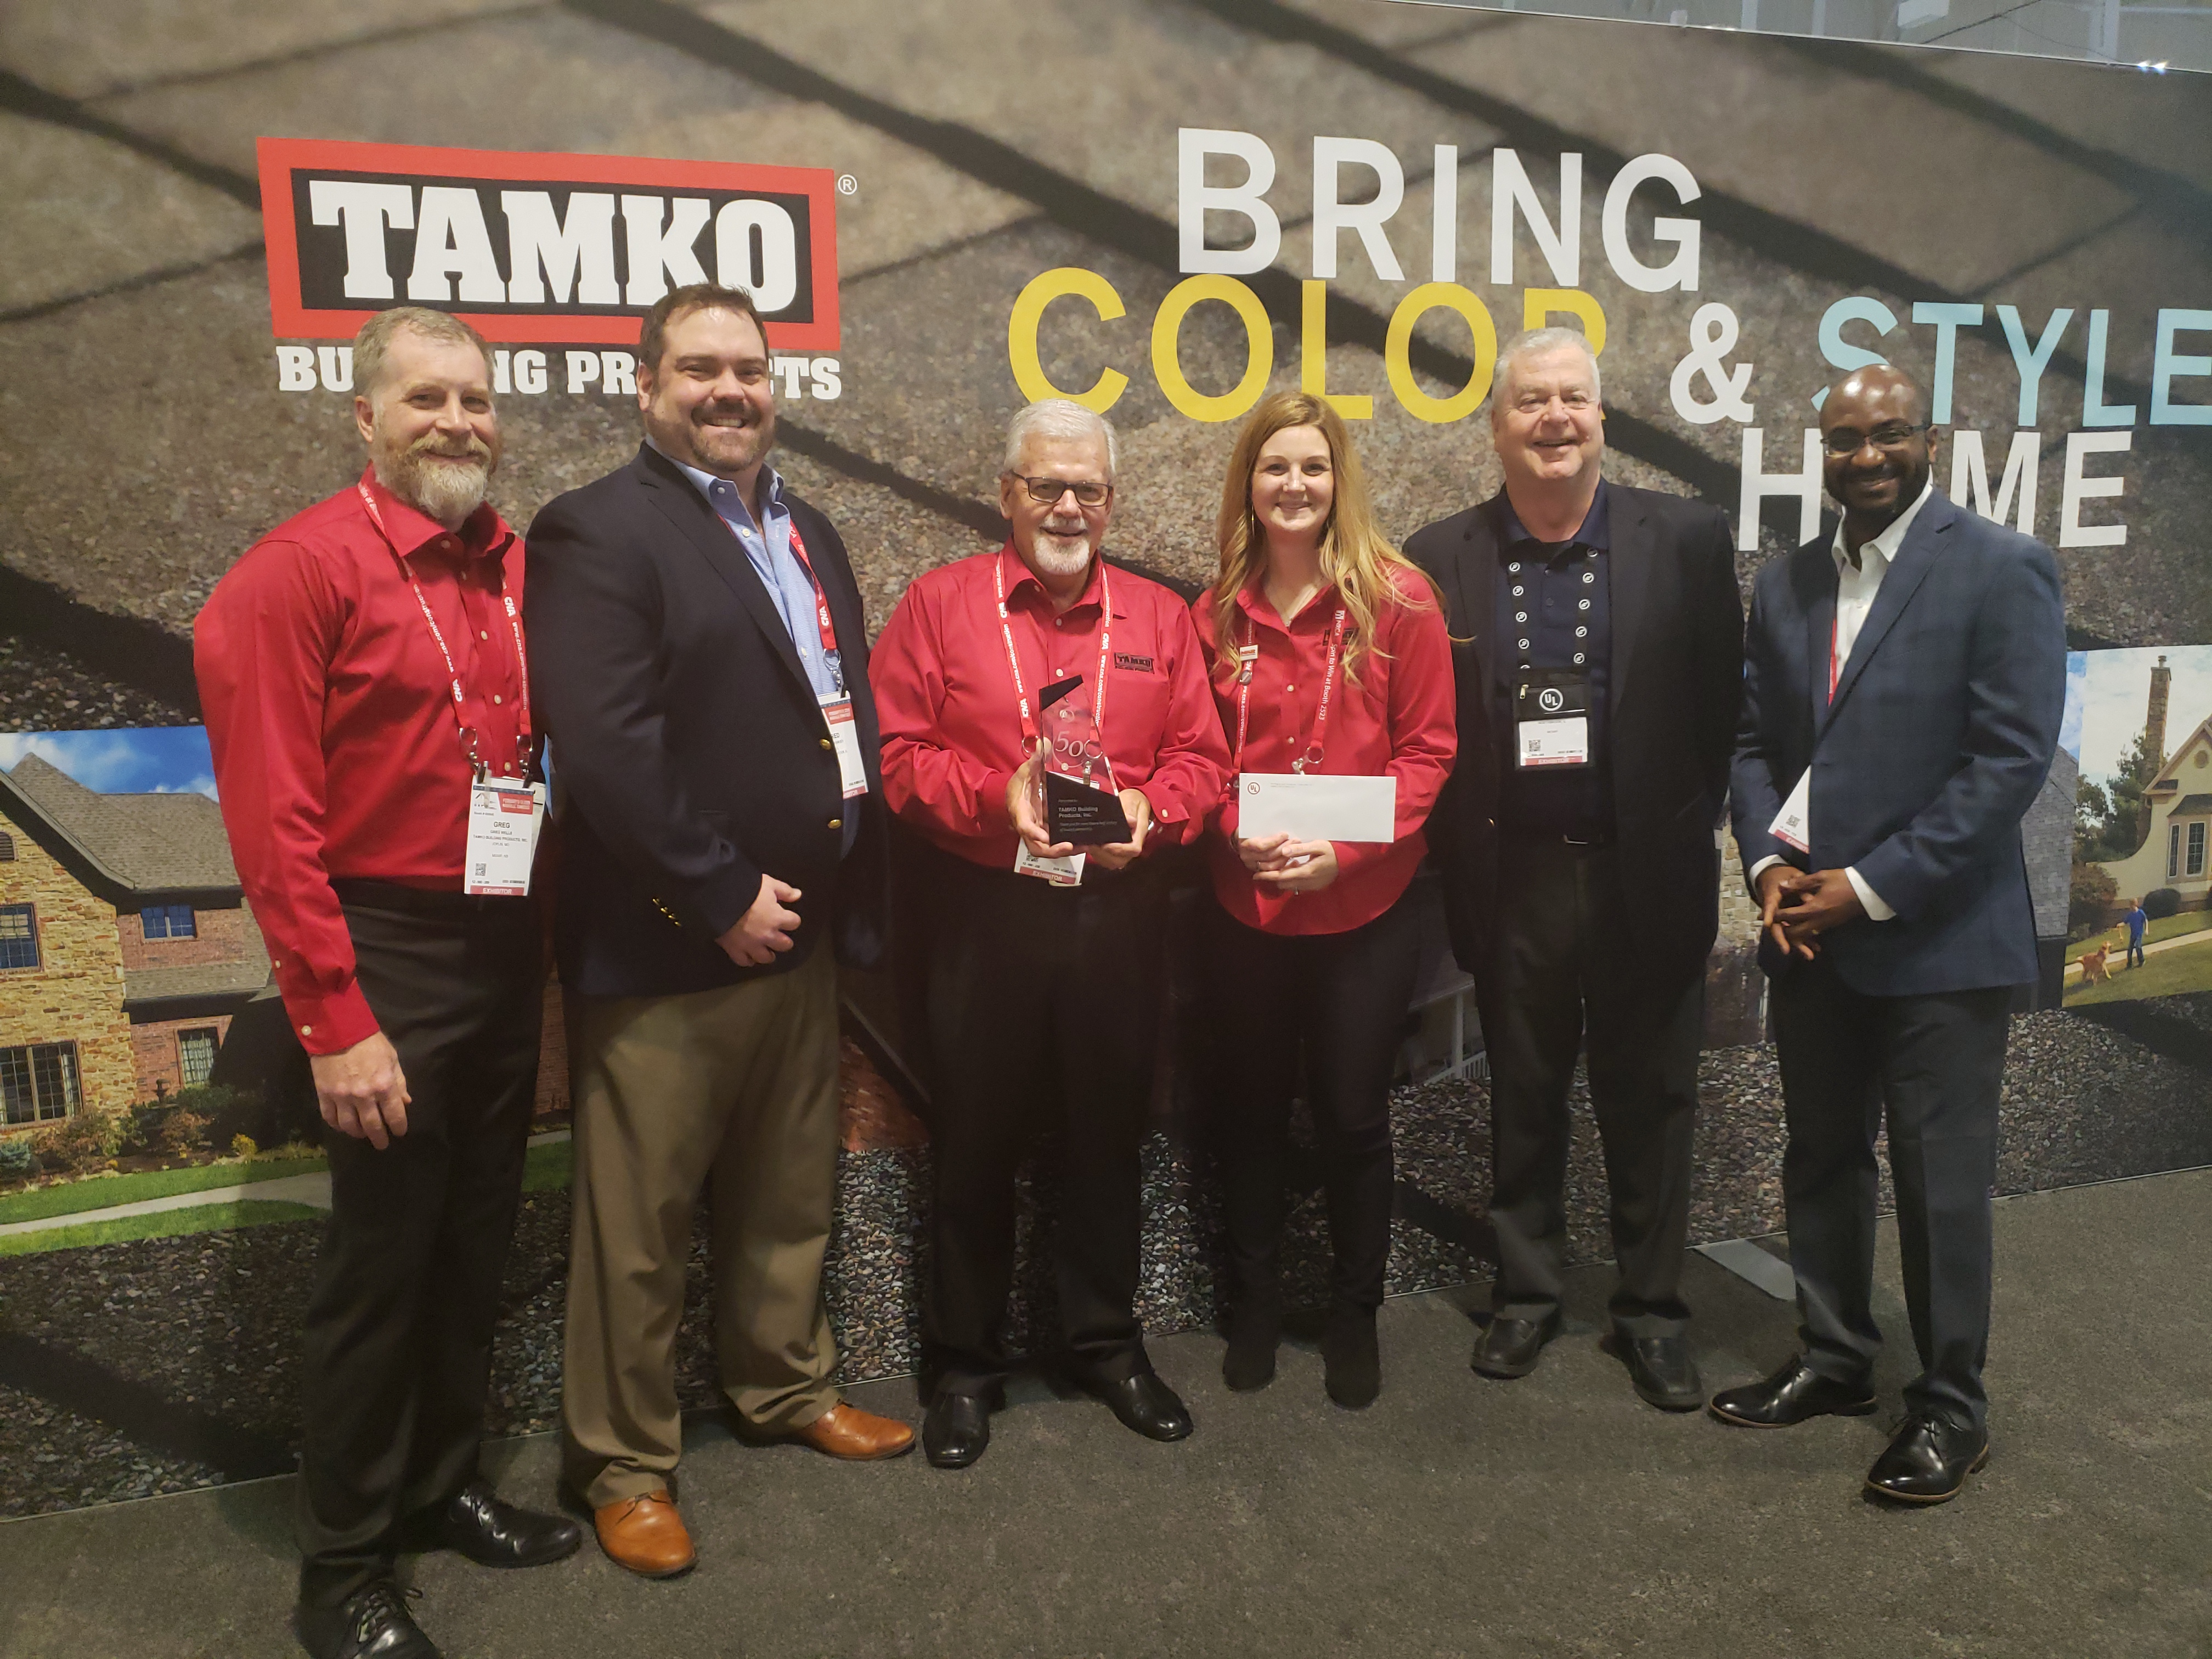 Ul Recognizes Tamko For More Than 50 Years Of Safety